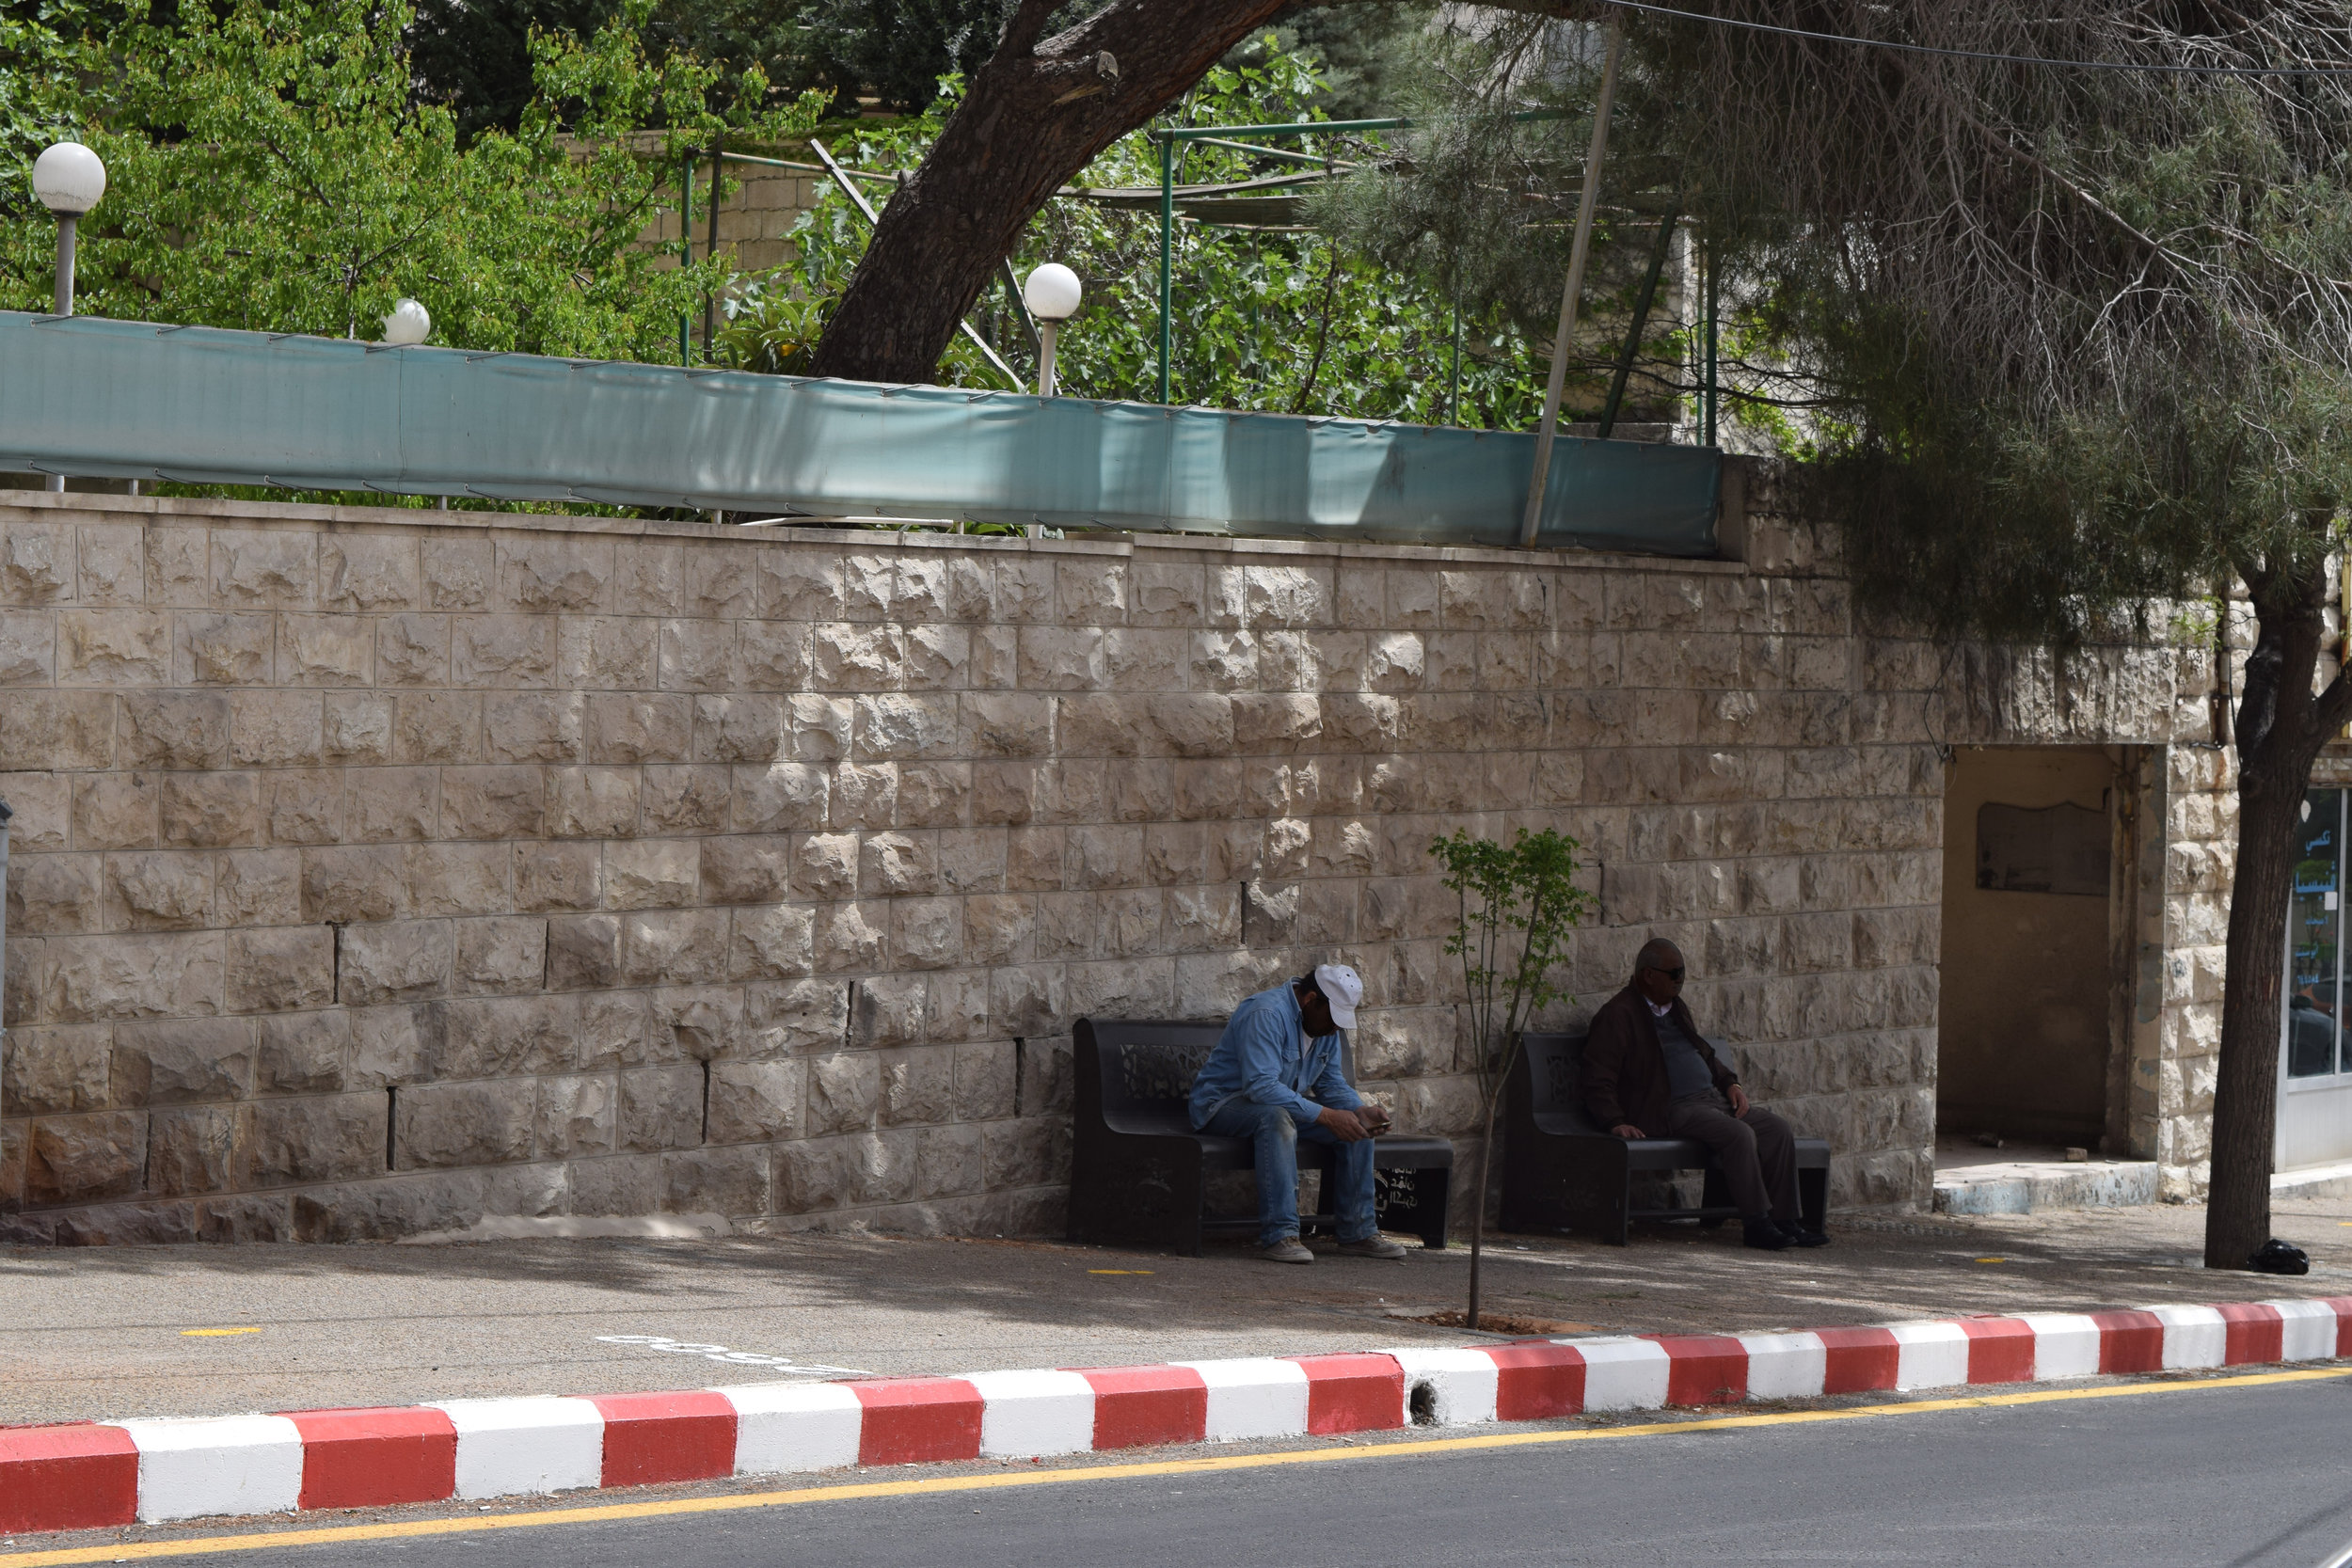 People using the newly-added benches.